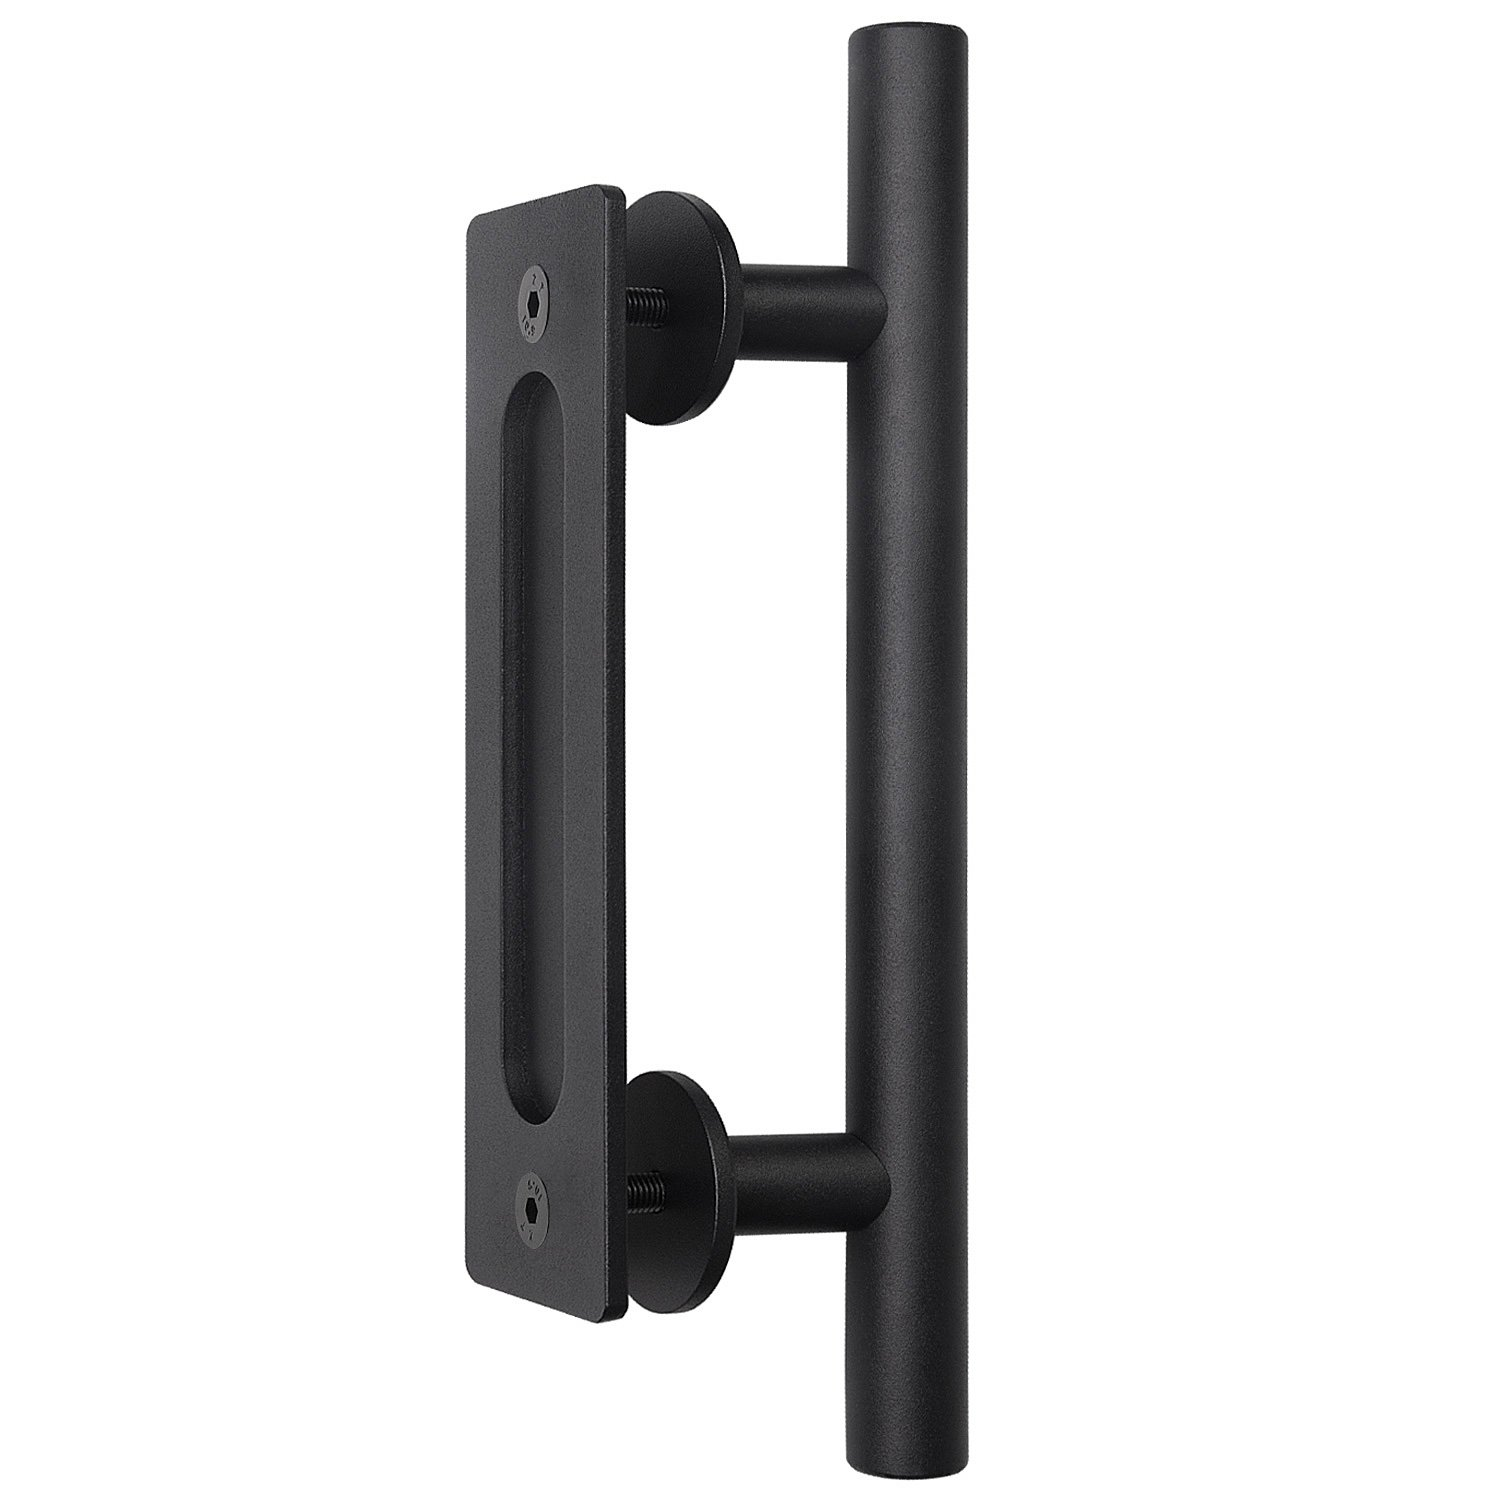 "Barn Door Handle Pull Flush Gate Handle Sliding Barn Door Handle Set Door Handle Barn Door Hardware Handle Black (12"") (Black)"